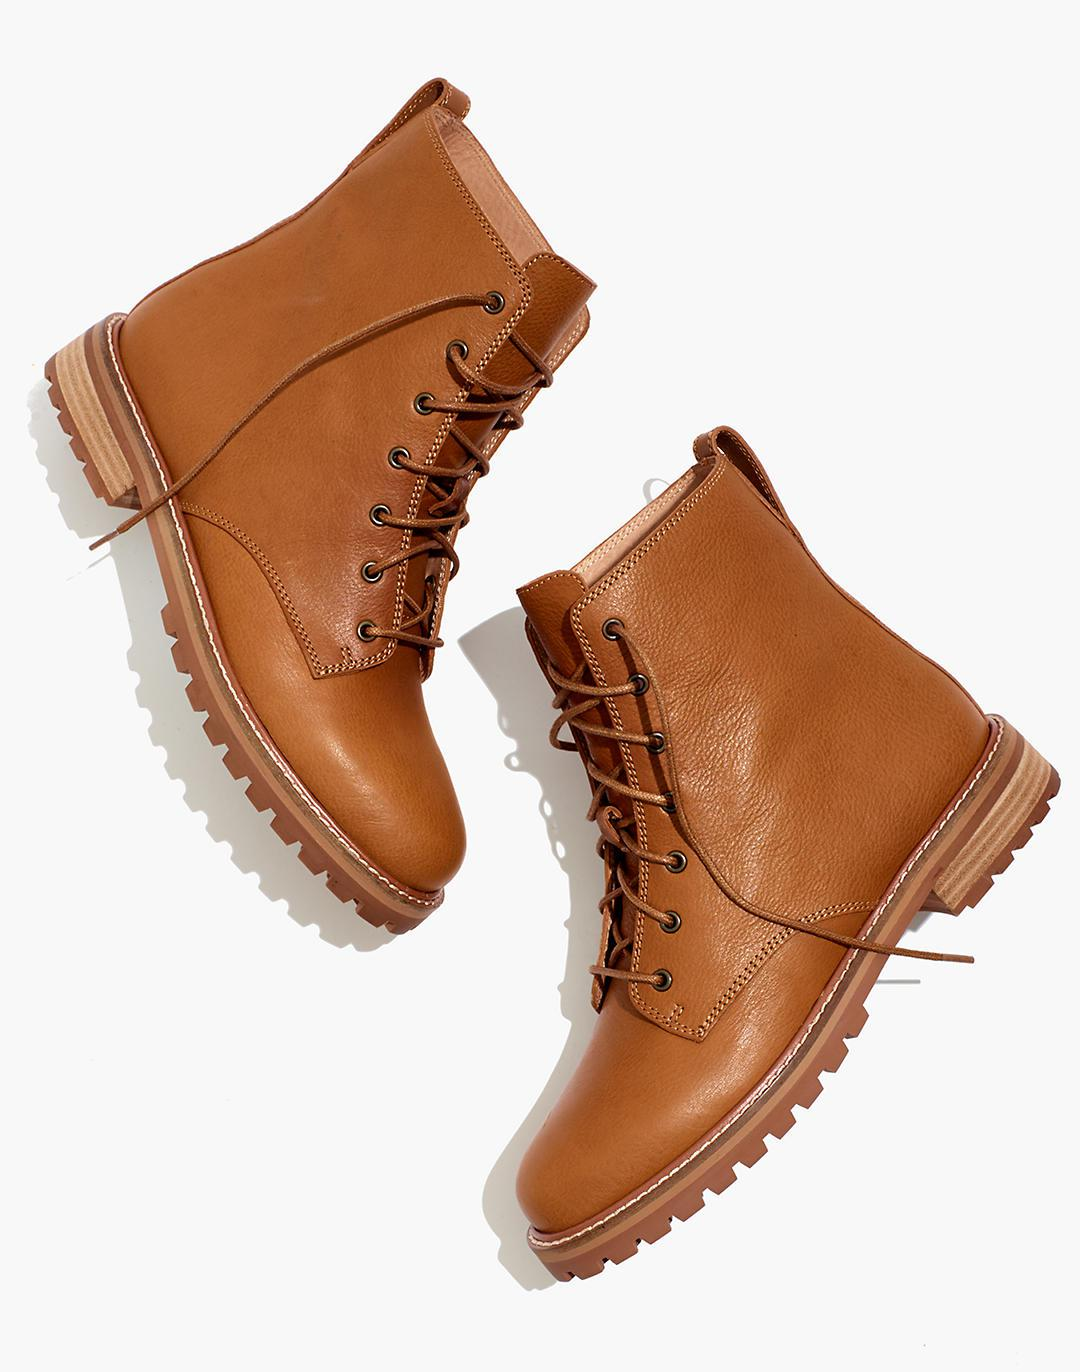 The Clair Lace-Up Boot in Leather